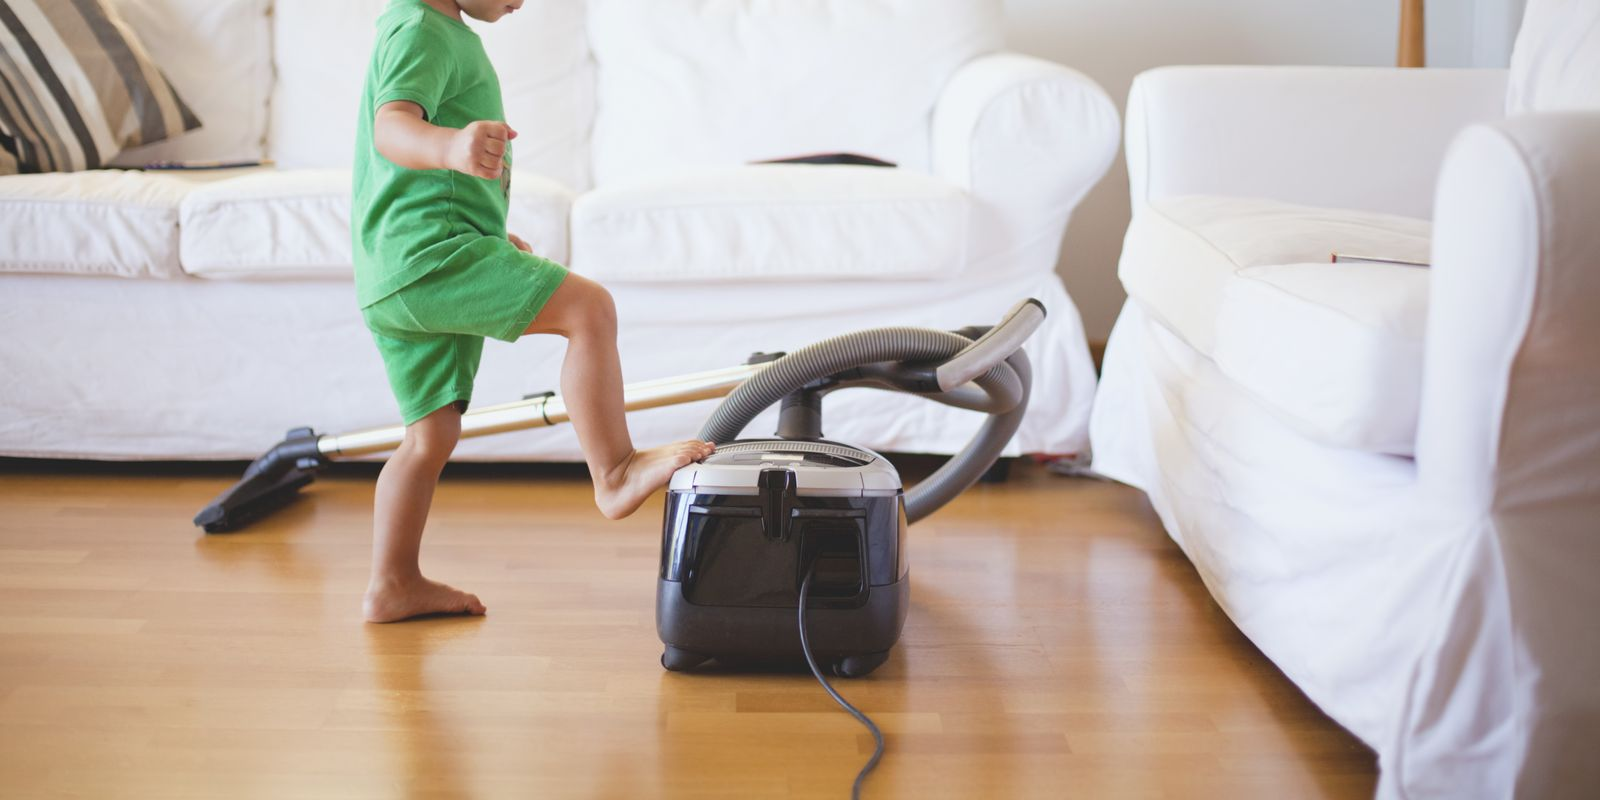 HOW TO BUY A GOOD VACUUM CLEANER